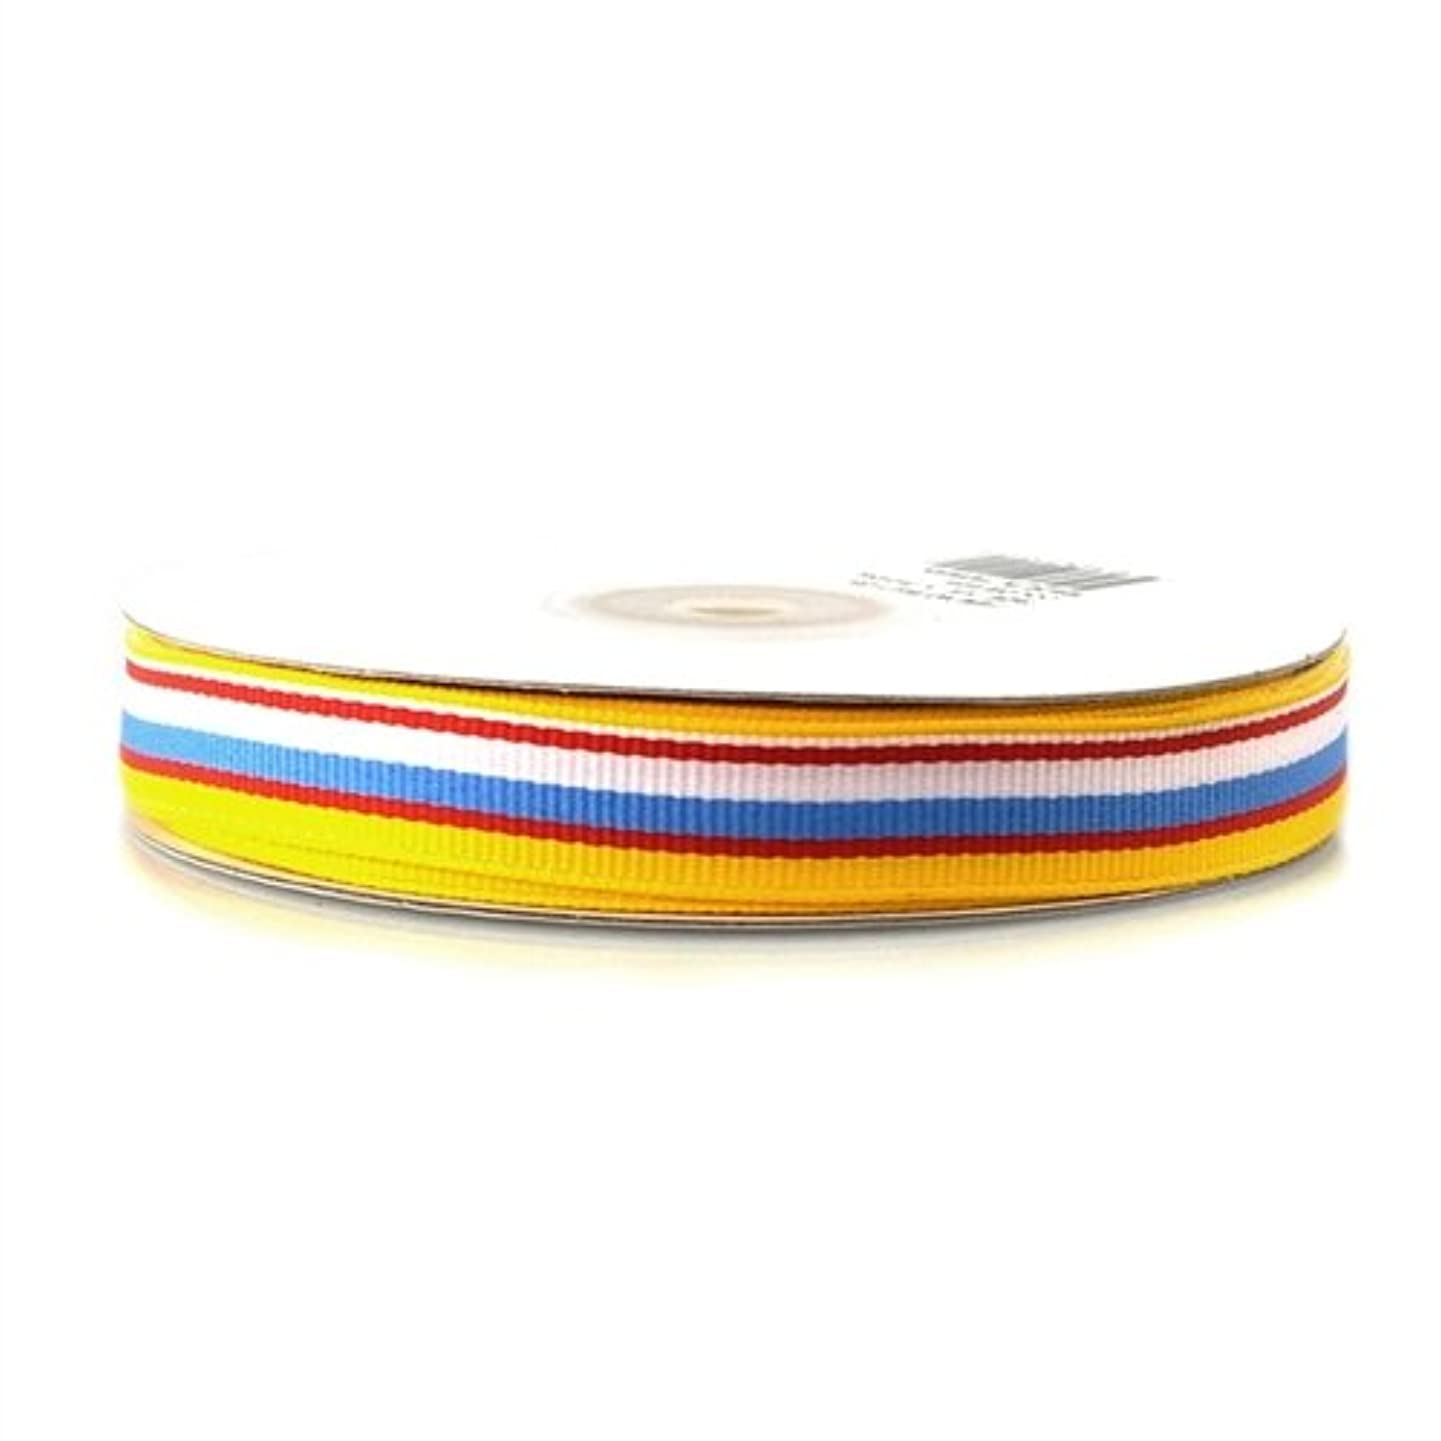 Homeford FHV000040105 25 yd Rainbow Striped Grosgrain Ribbon, 5/8